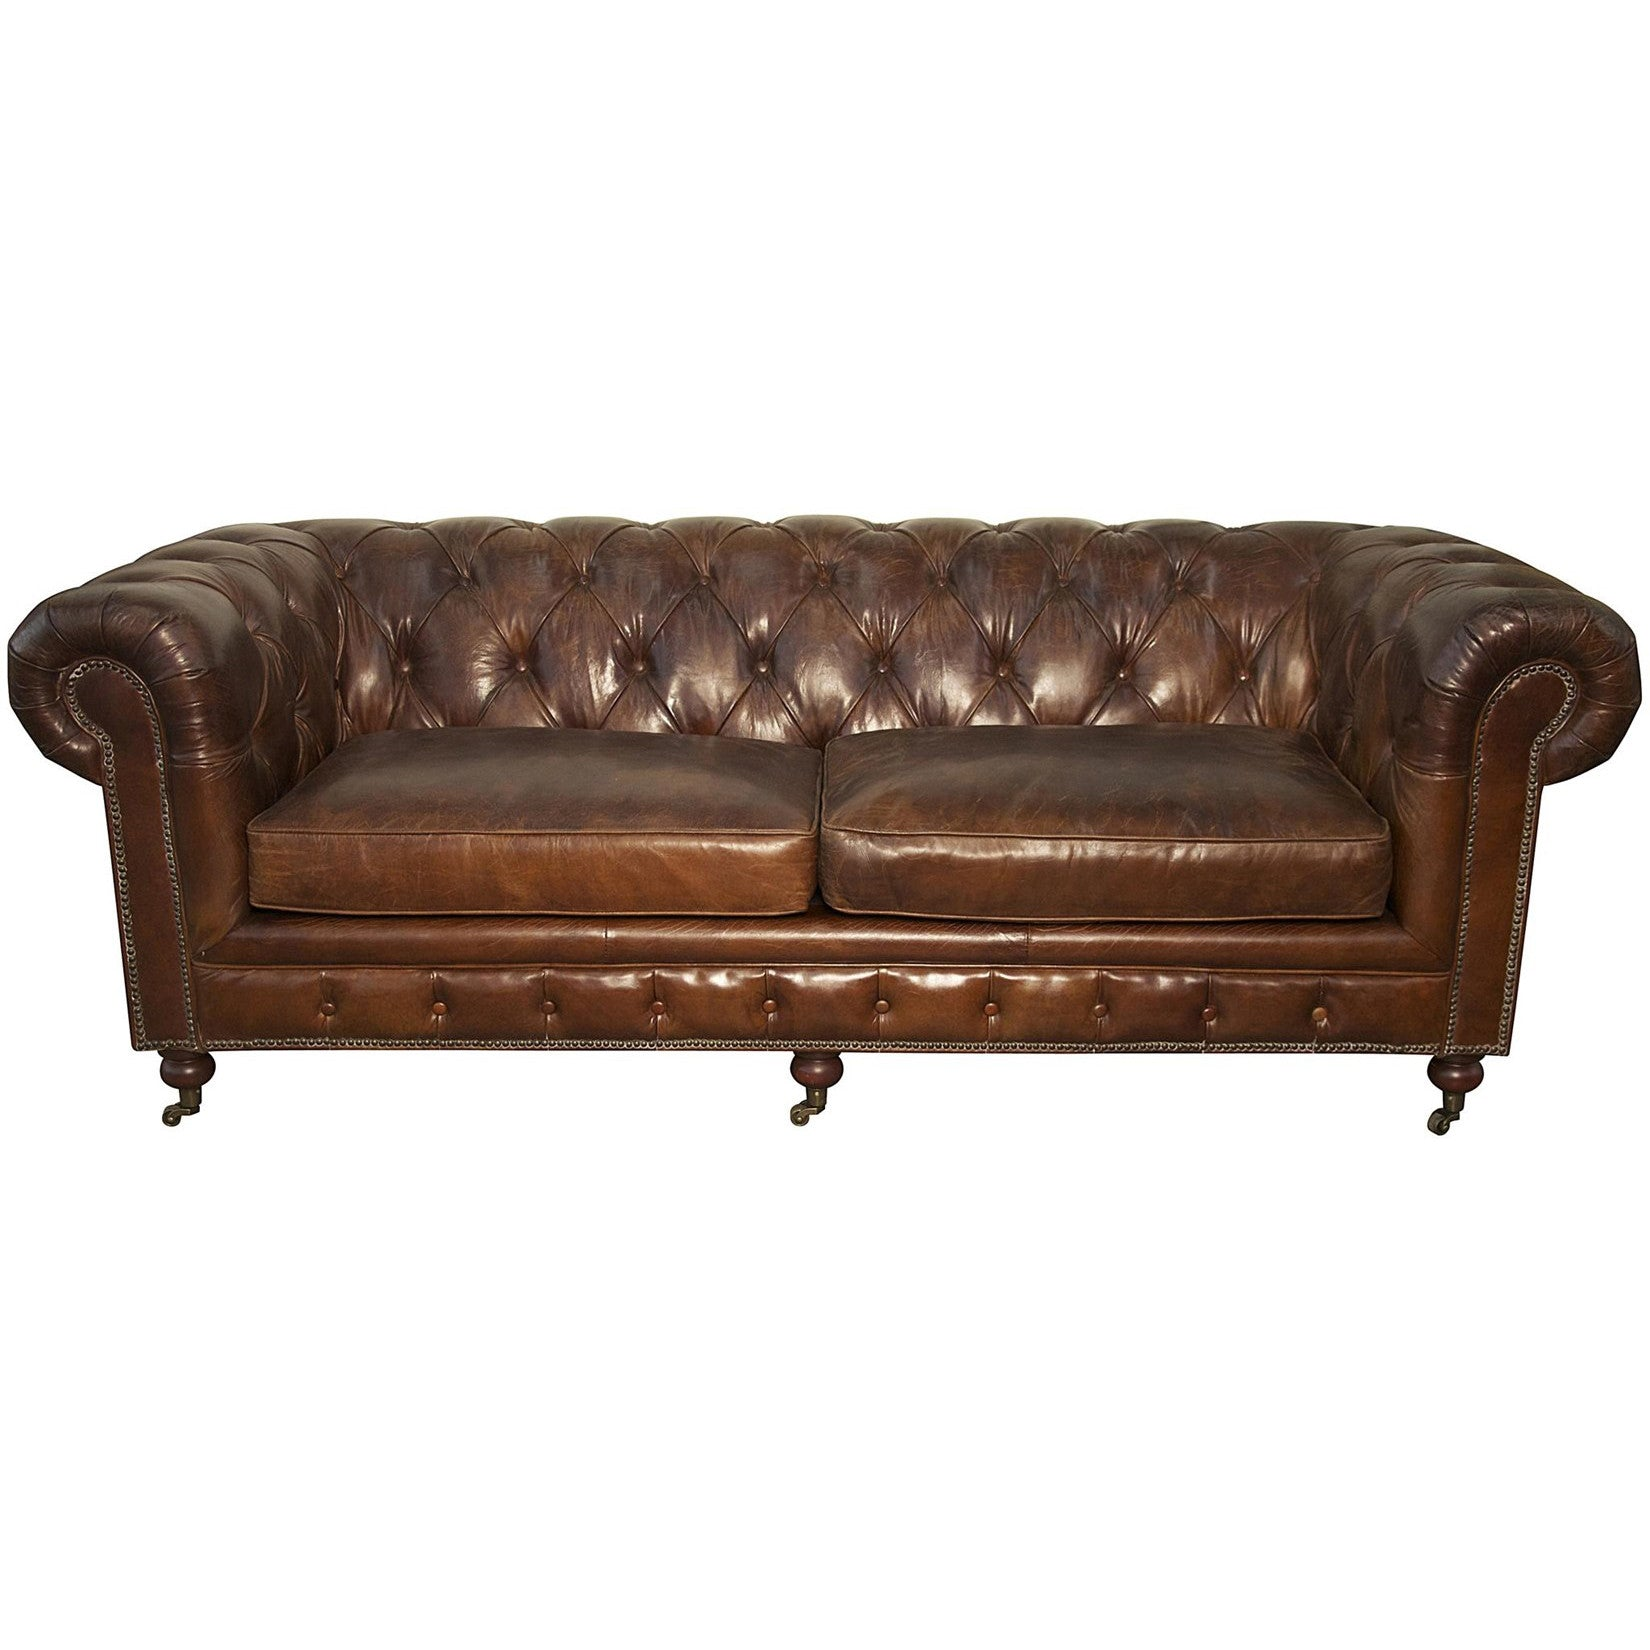 Noir 3 Seater Tufted Sofa Brown Vintage Leather Ldc Home